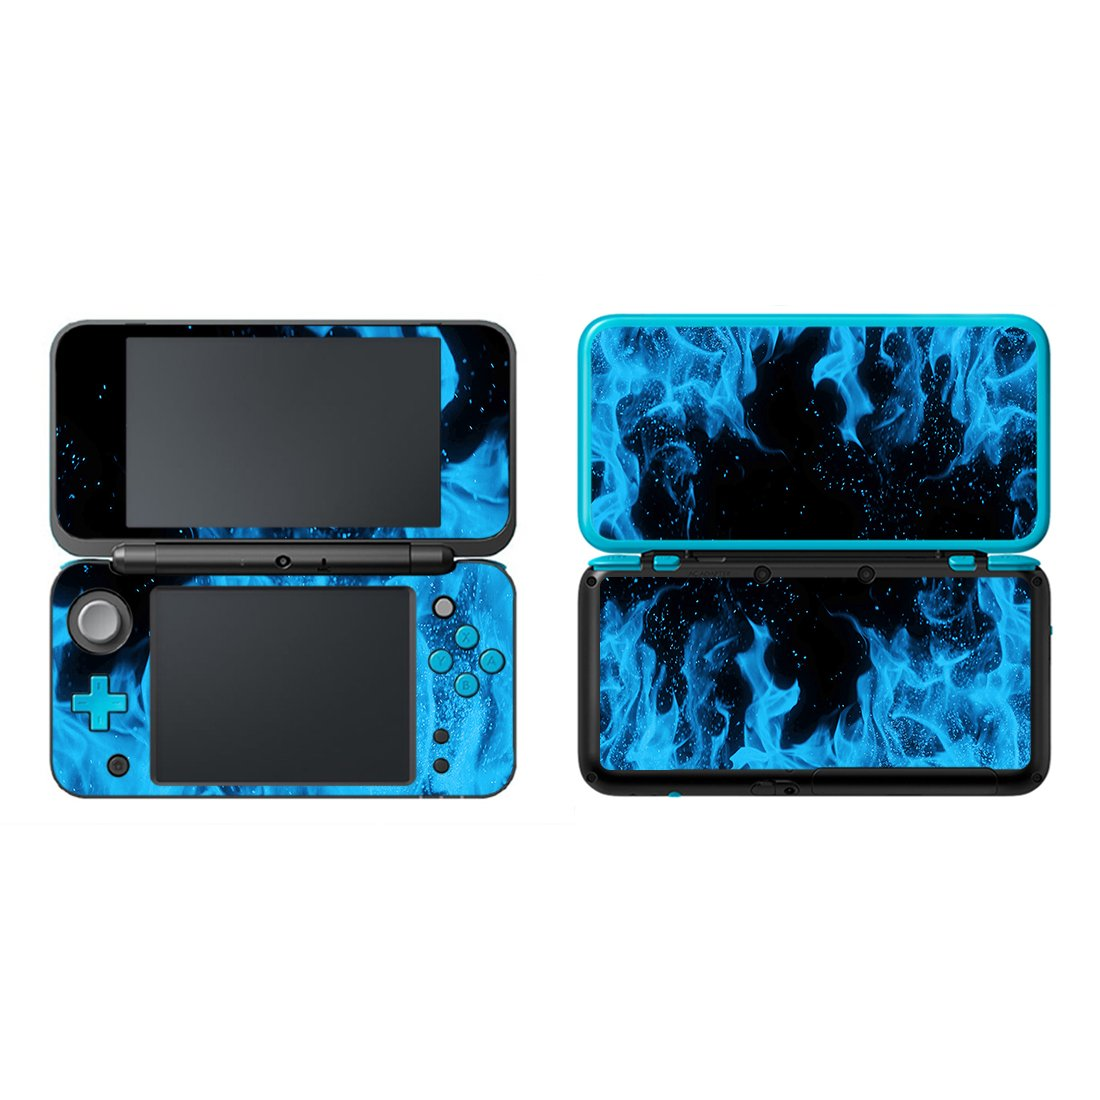 UUShop Protective Vinyl Skin Sticker Cover Wrap for New Nintendo 2DS XL/LL Ice Blue Flame